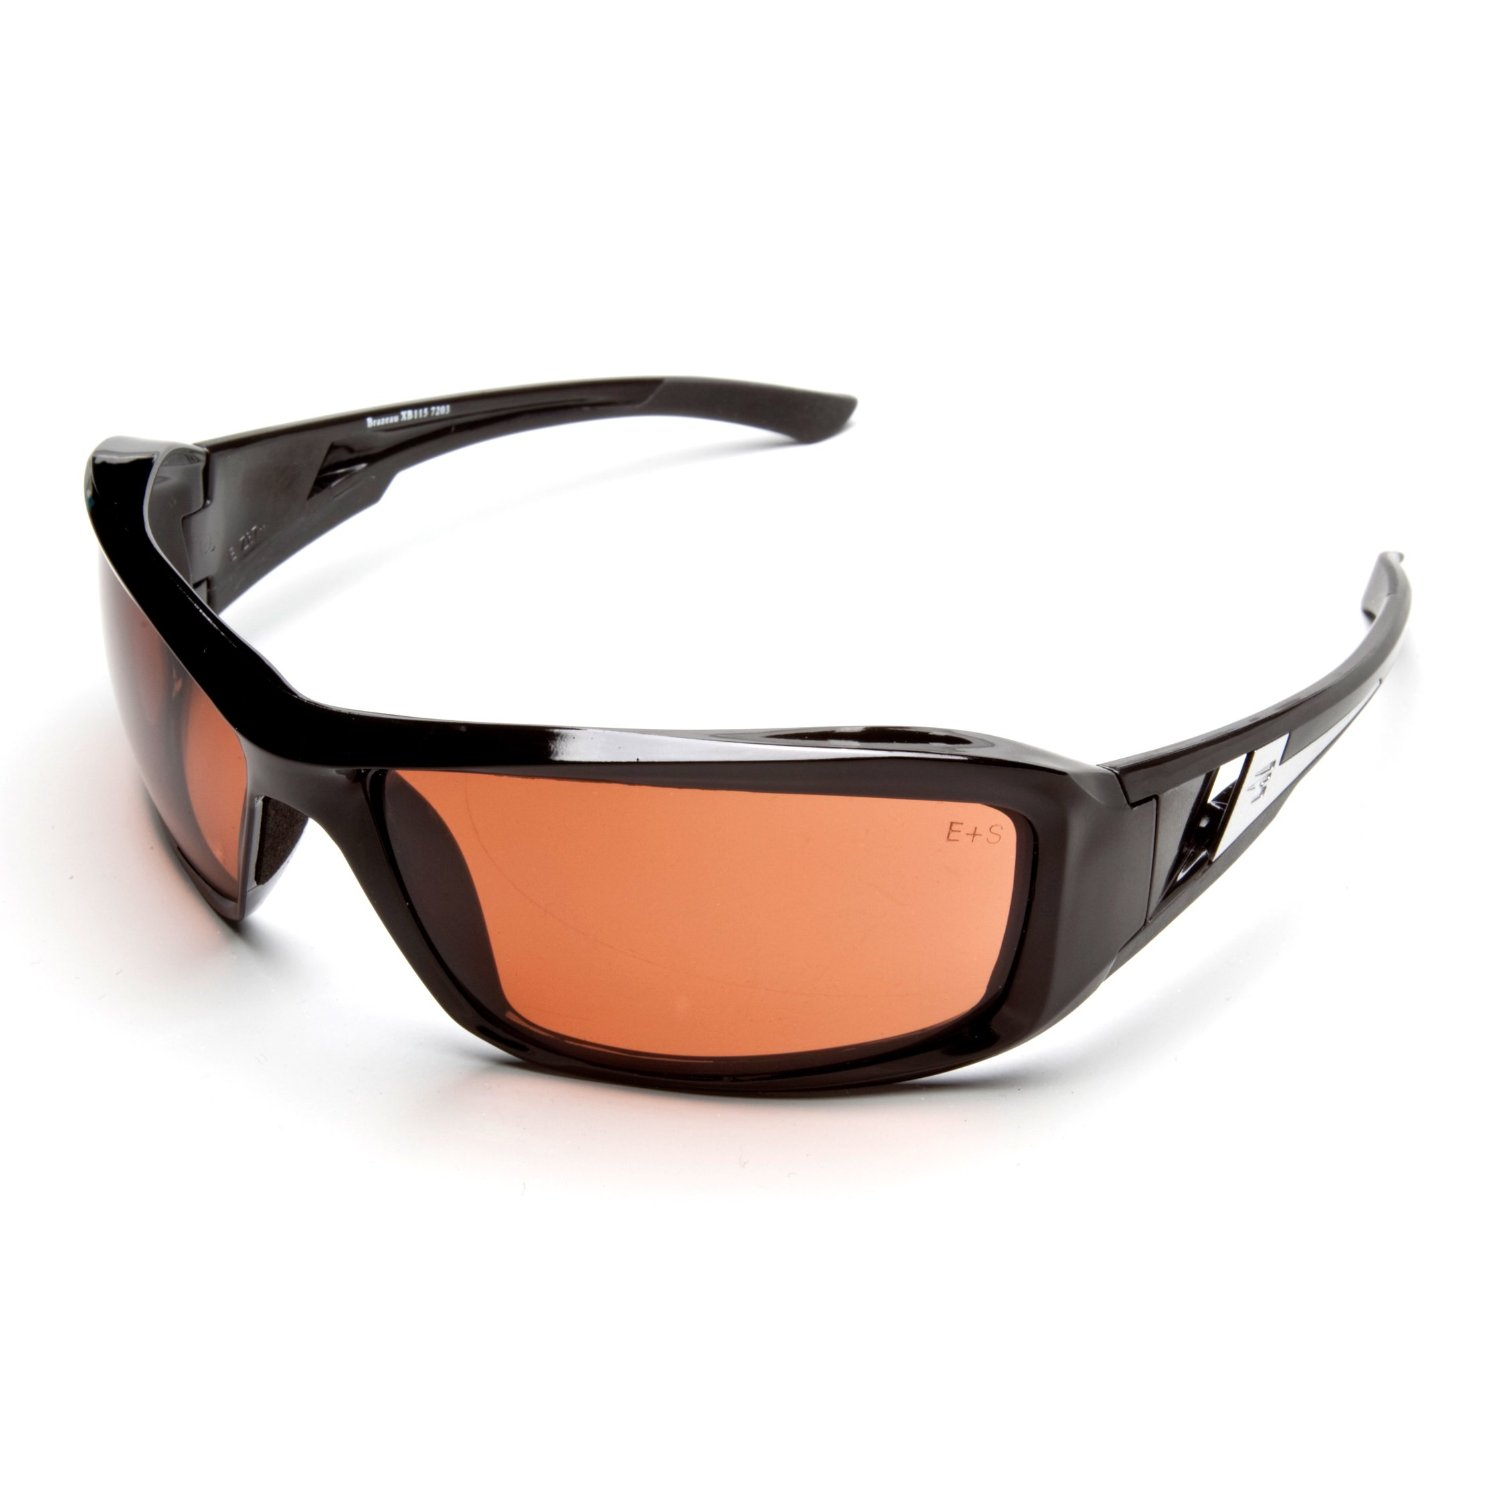 Brazeau Safety Glasses, Black Torque Series with Polarized Smoke Lens